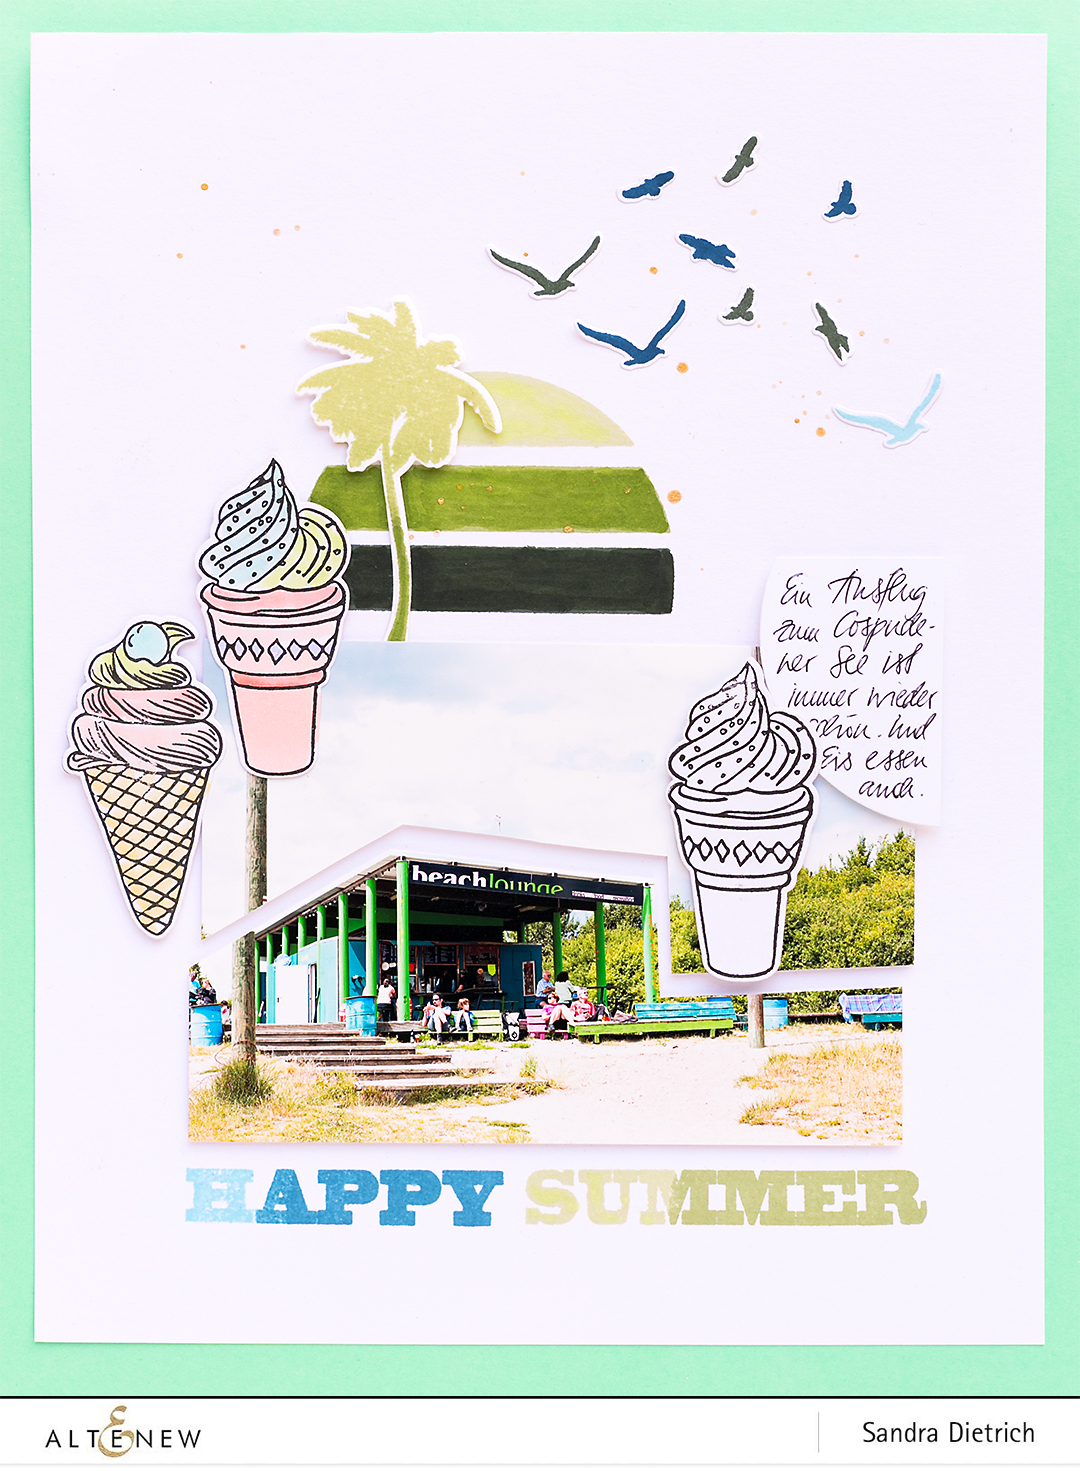 Summer Swirls Stamp Set on Scrapbook Layout @SandraDietrich for @Altenew